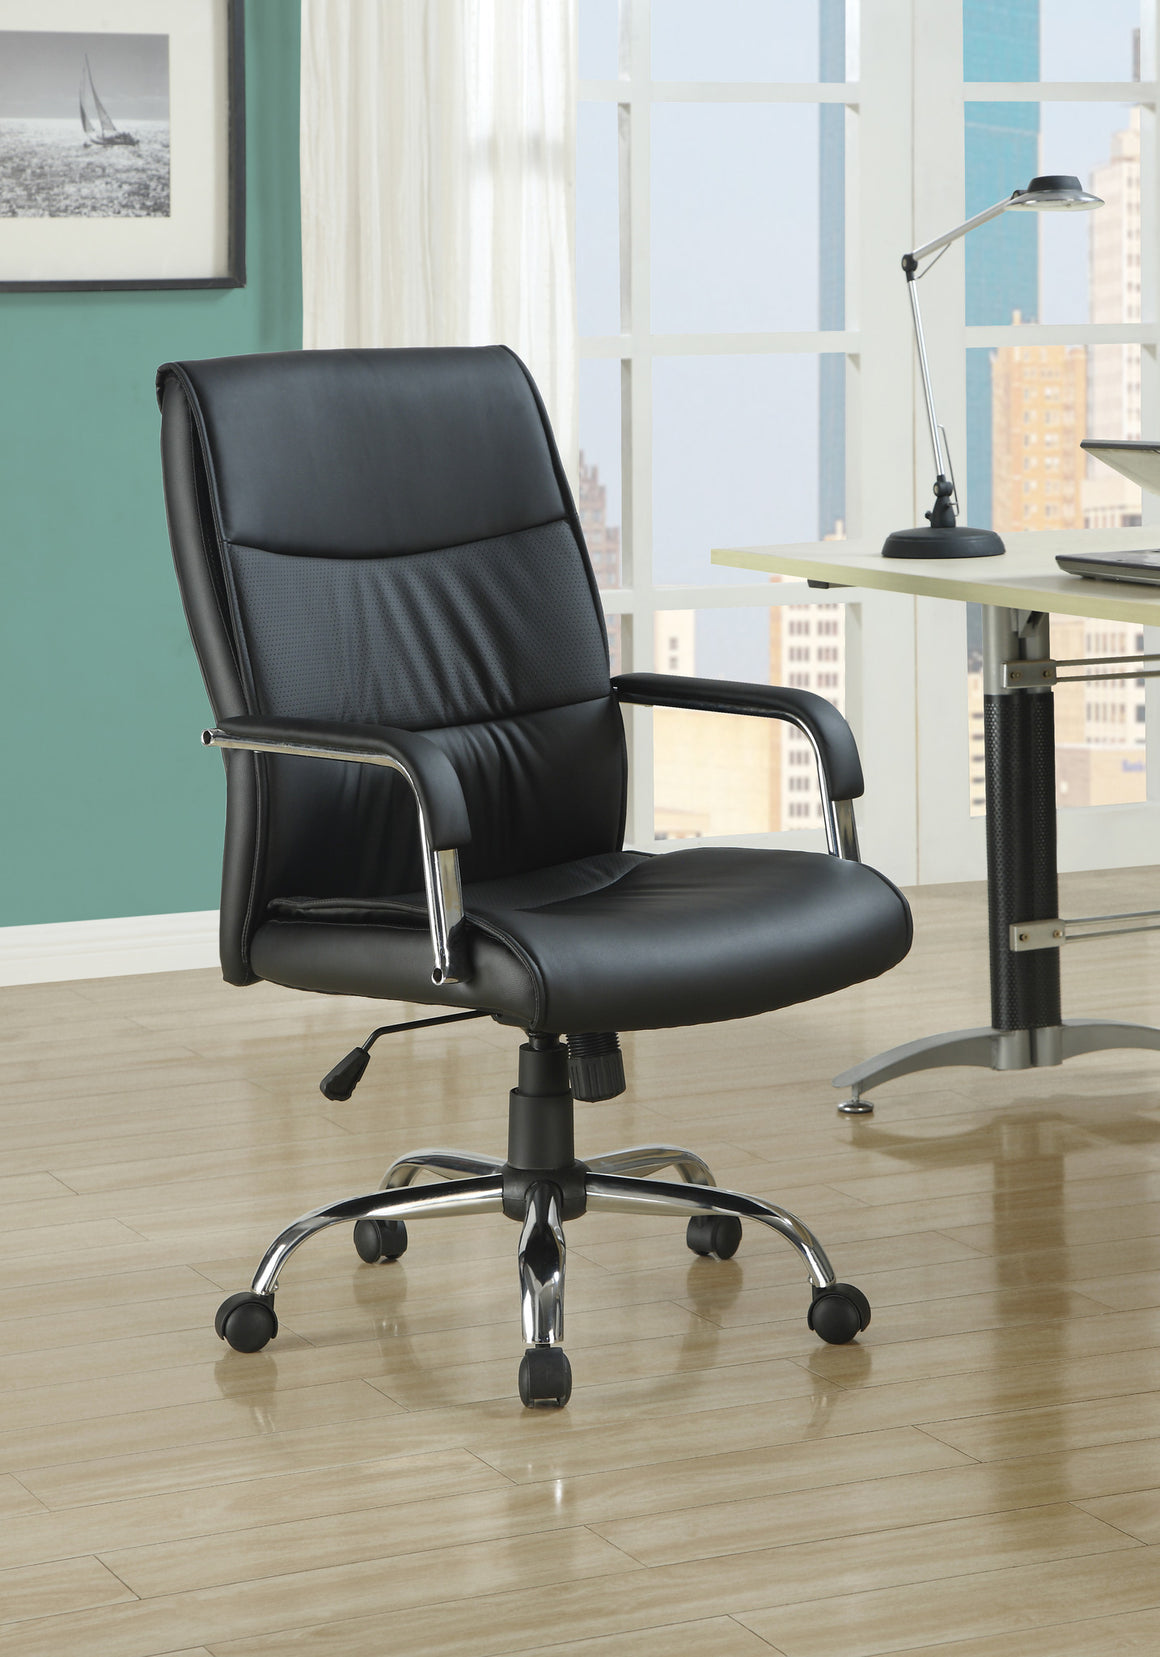 High-back Black Leather-look Fabric Office Chair - TheOfficeFurnitureDepot